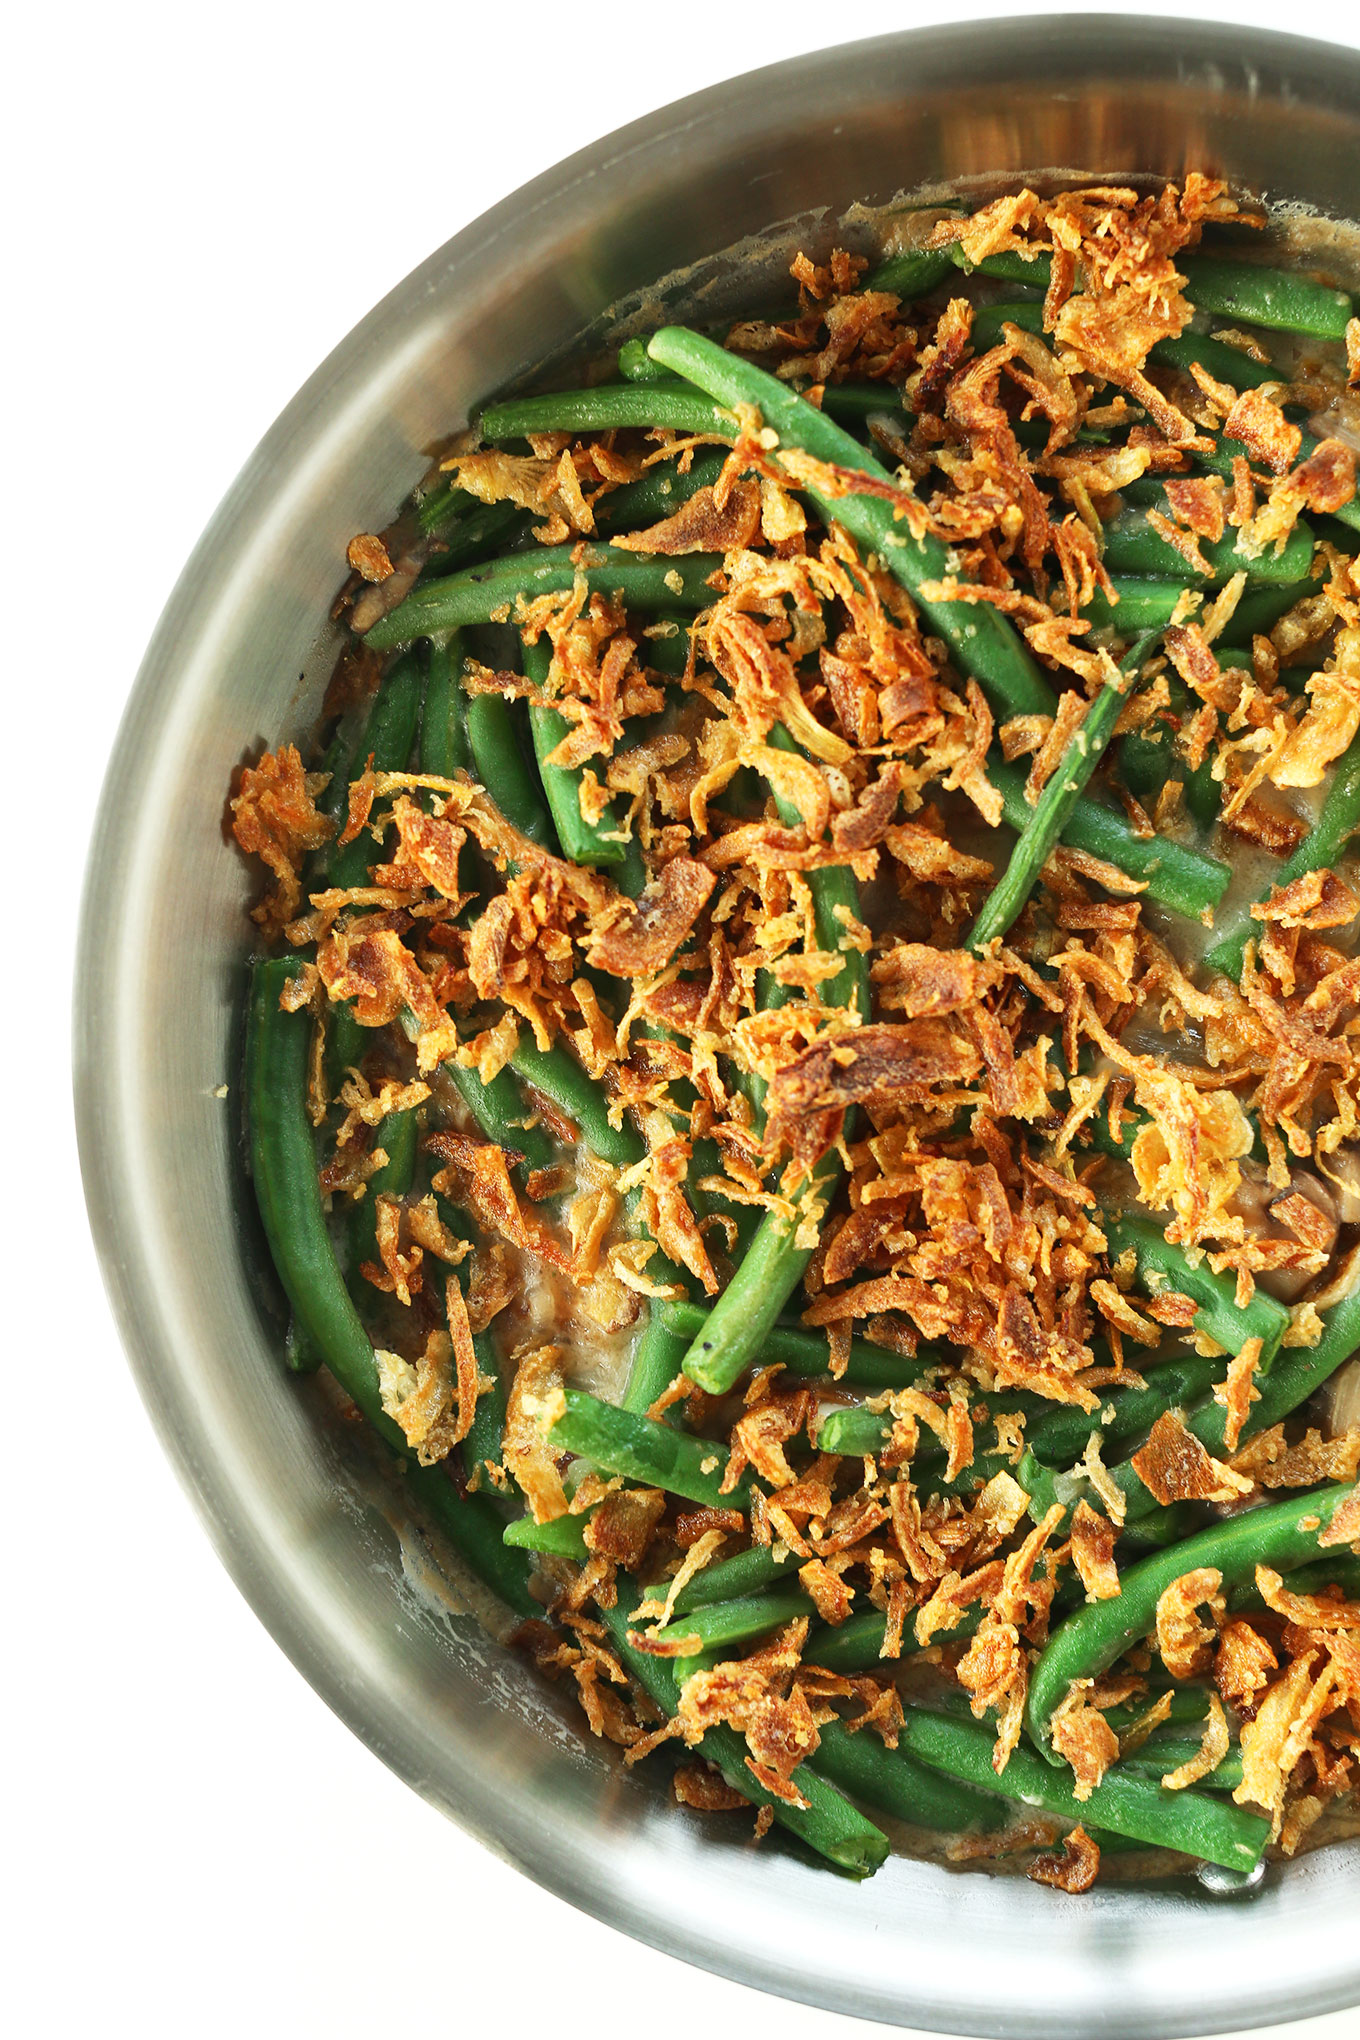 Delicious Vegan Green Bean Casserole in a skillet